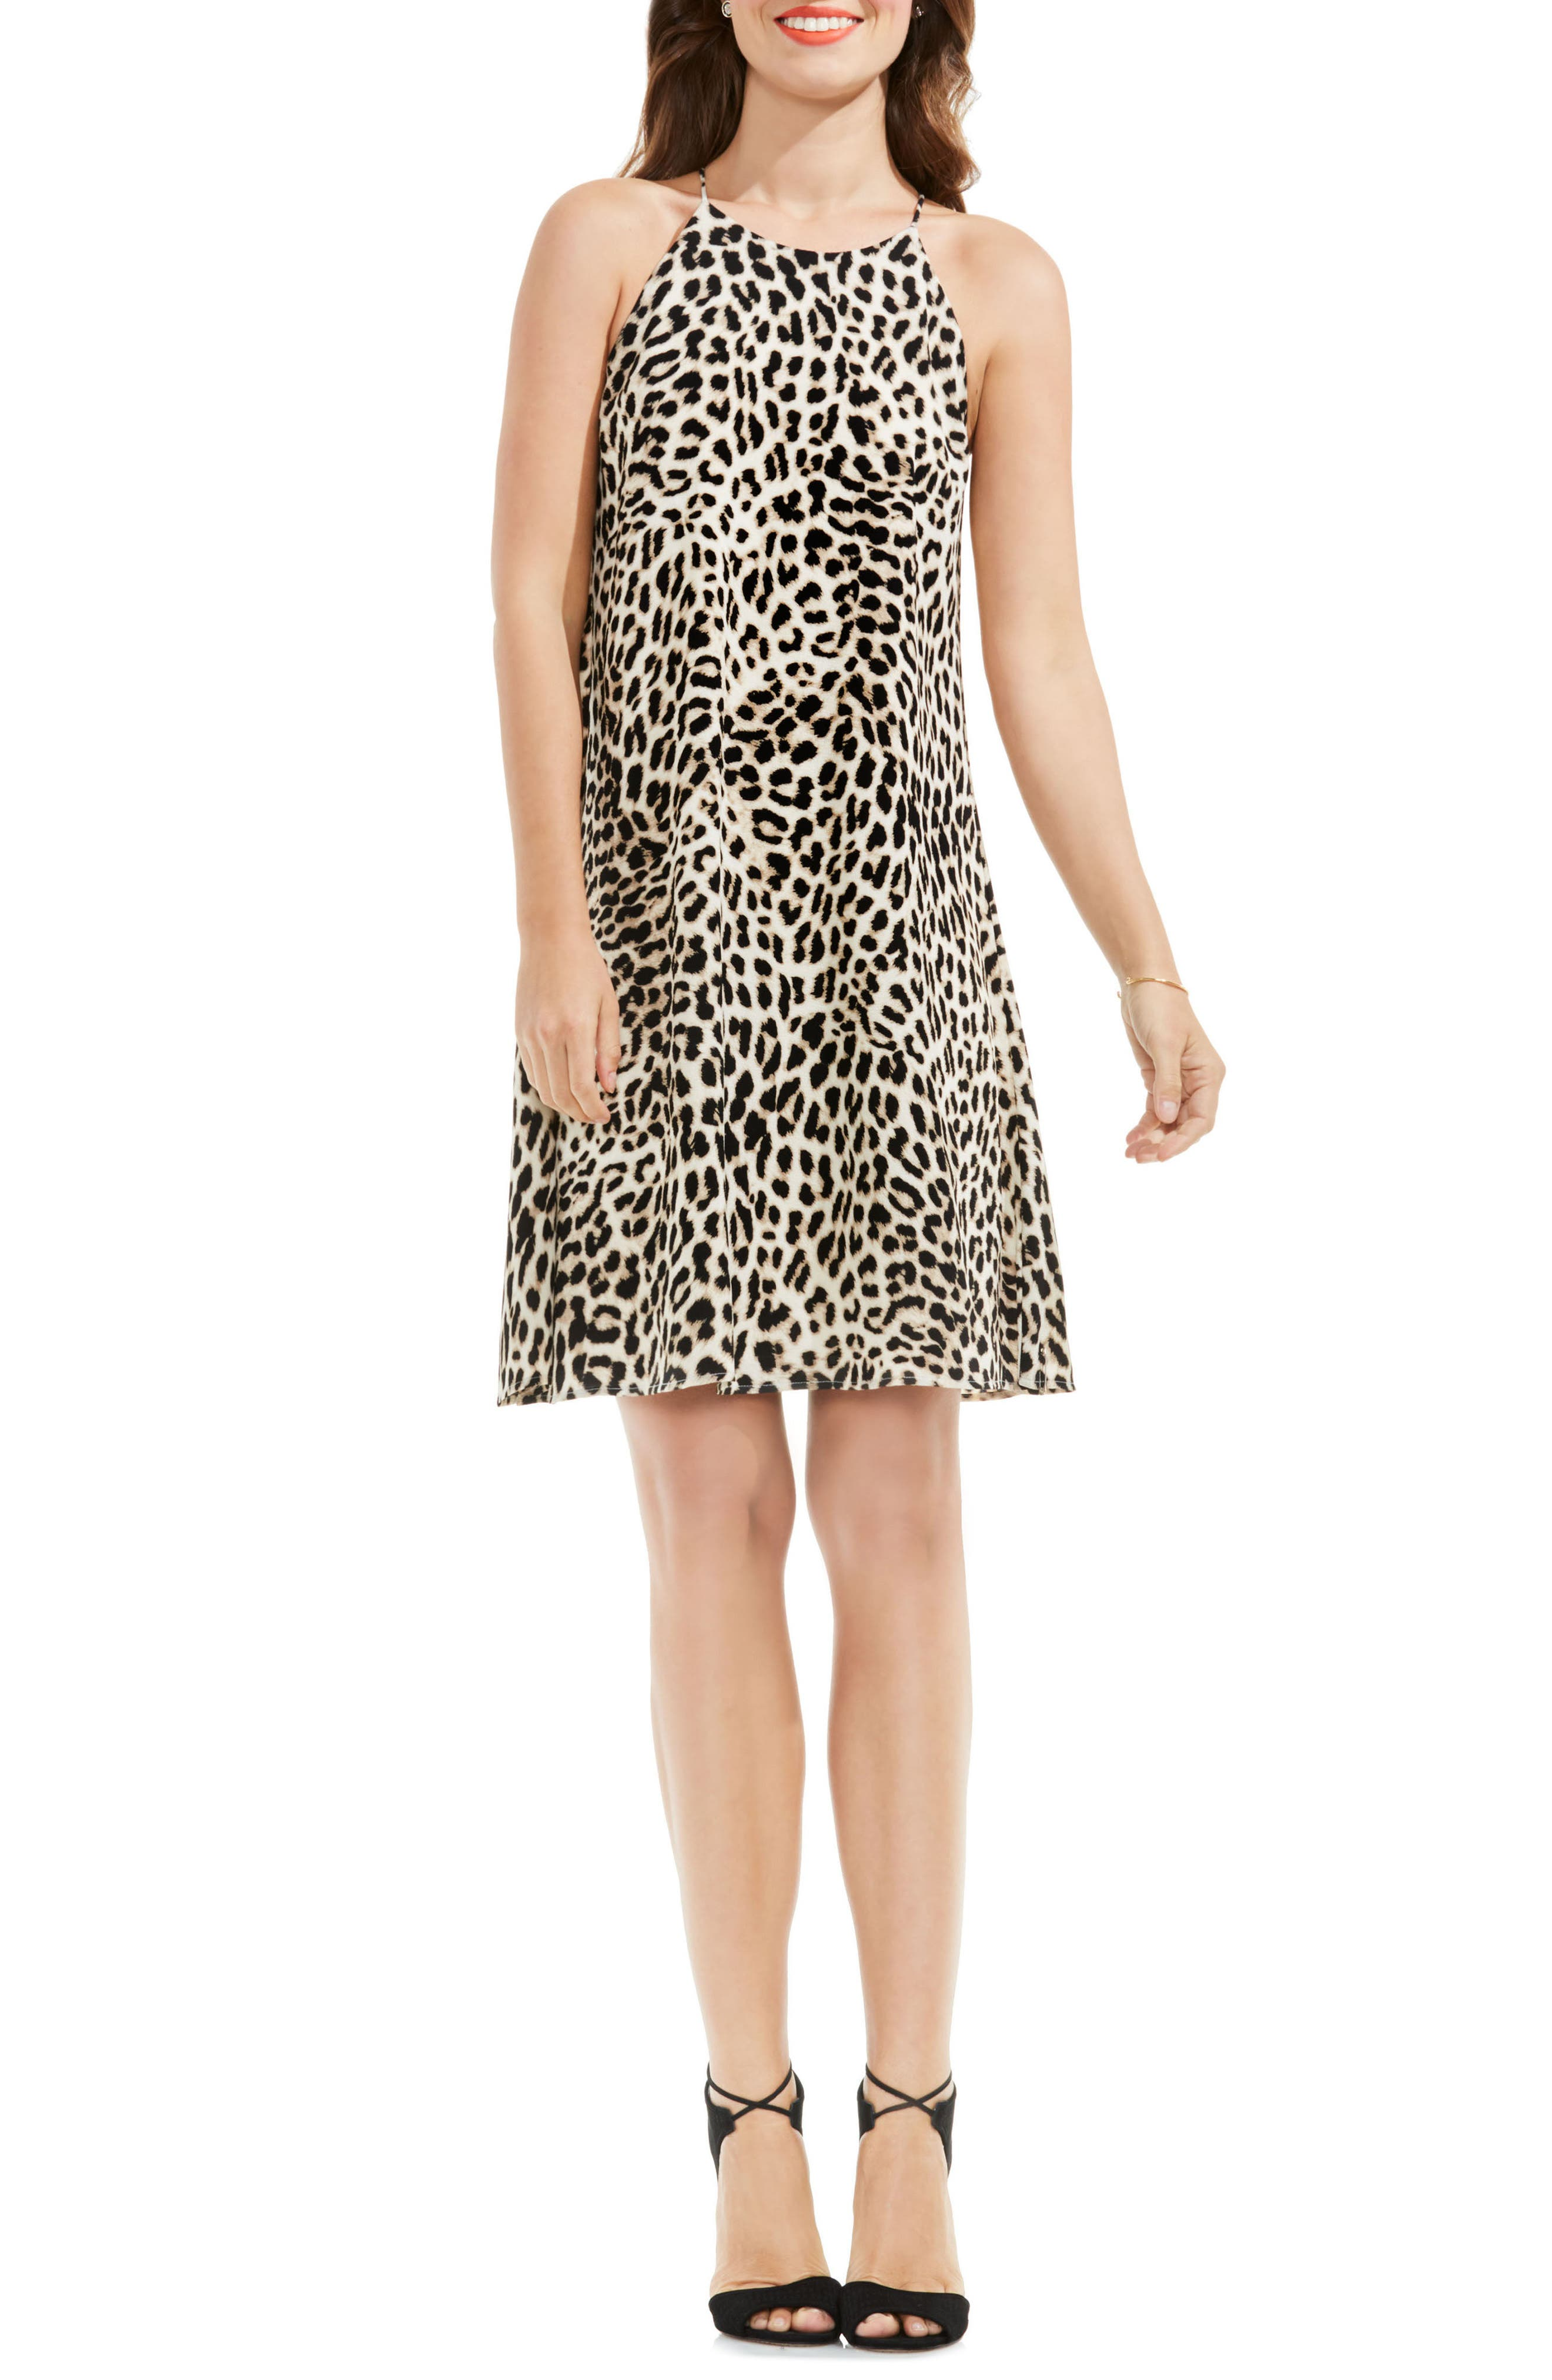 Vince Camuto Leopard Print Shift Dress